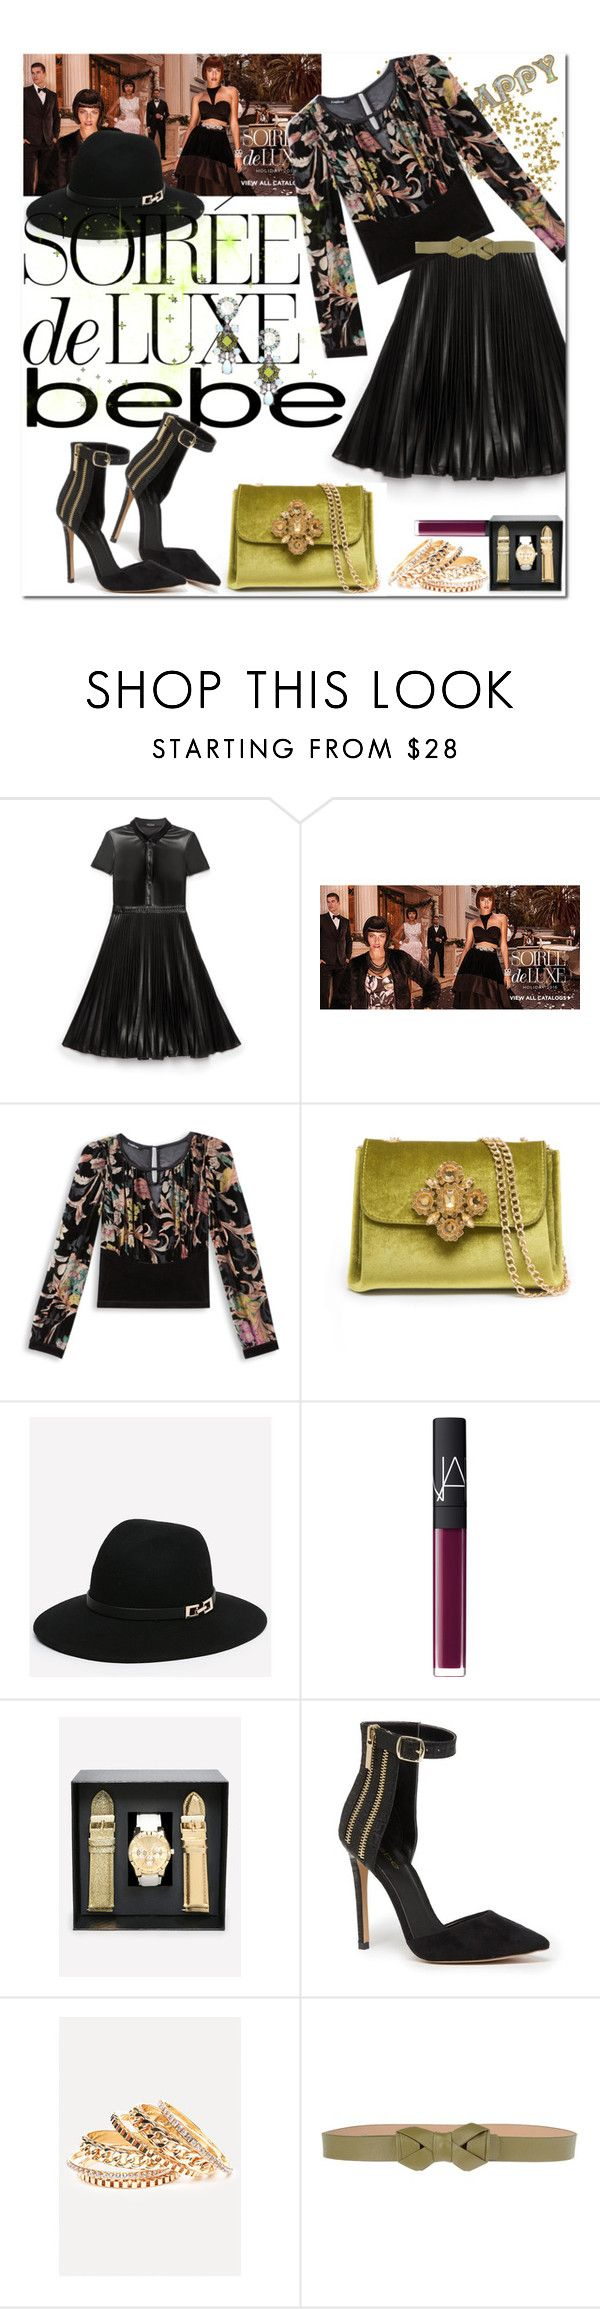 """Soirée de Luxe with bebe Holiday: Contest Entry"" by iraavalon ❤ liked on Polyvore featuring moda, Bebe, NARS Cosmetics i RED Valentino"